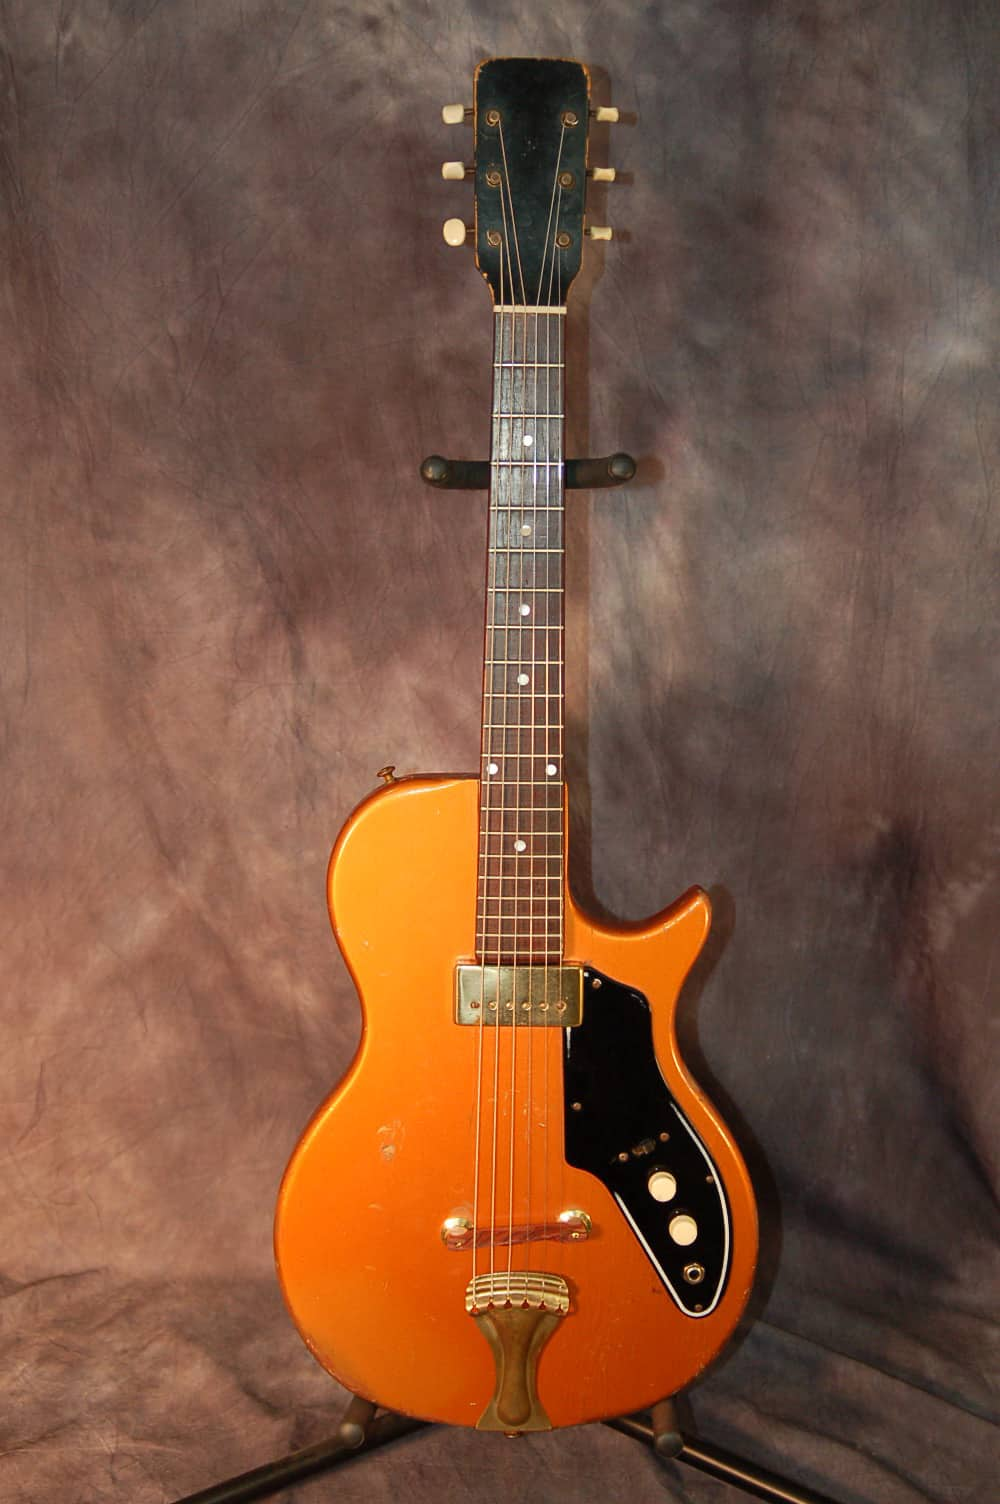 dating regal guitars Welcome welcome to vintageparlorguitarscom i specialize in the repair, restoration and sale of early to mid-century parlor and small bodied 12-fret acoustic guitars.